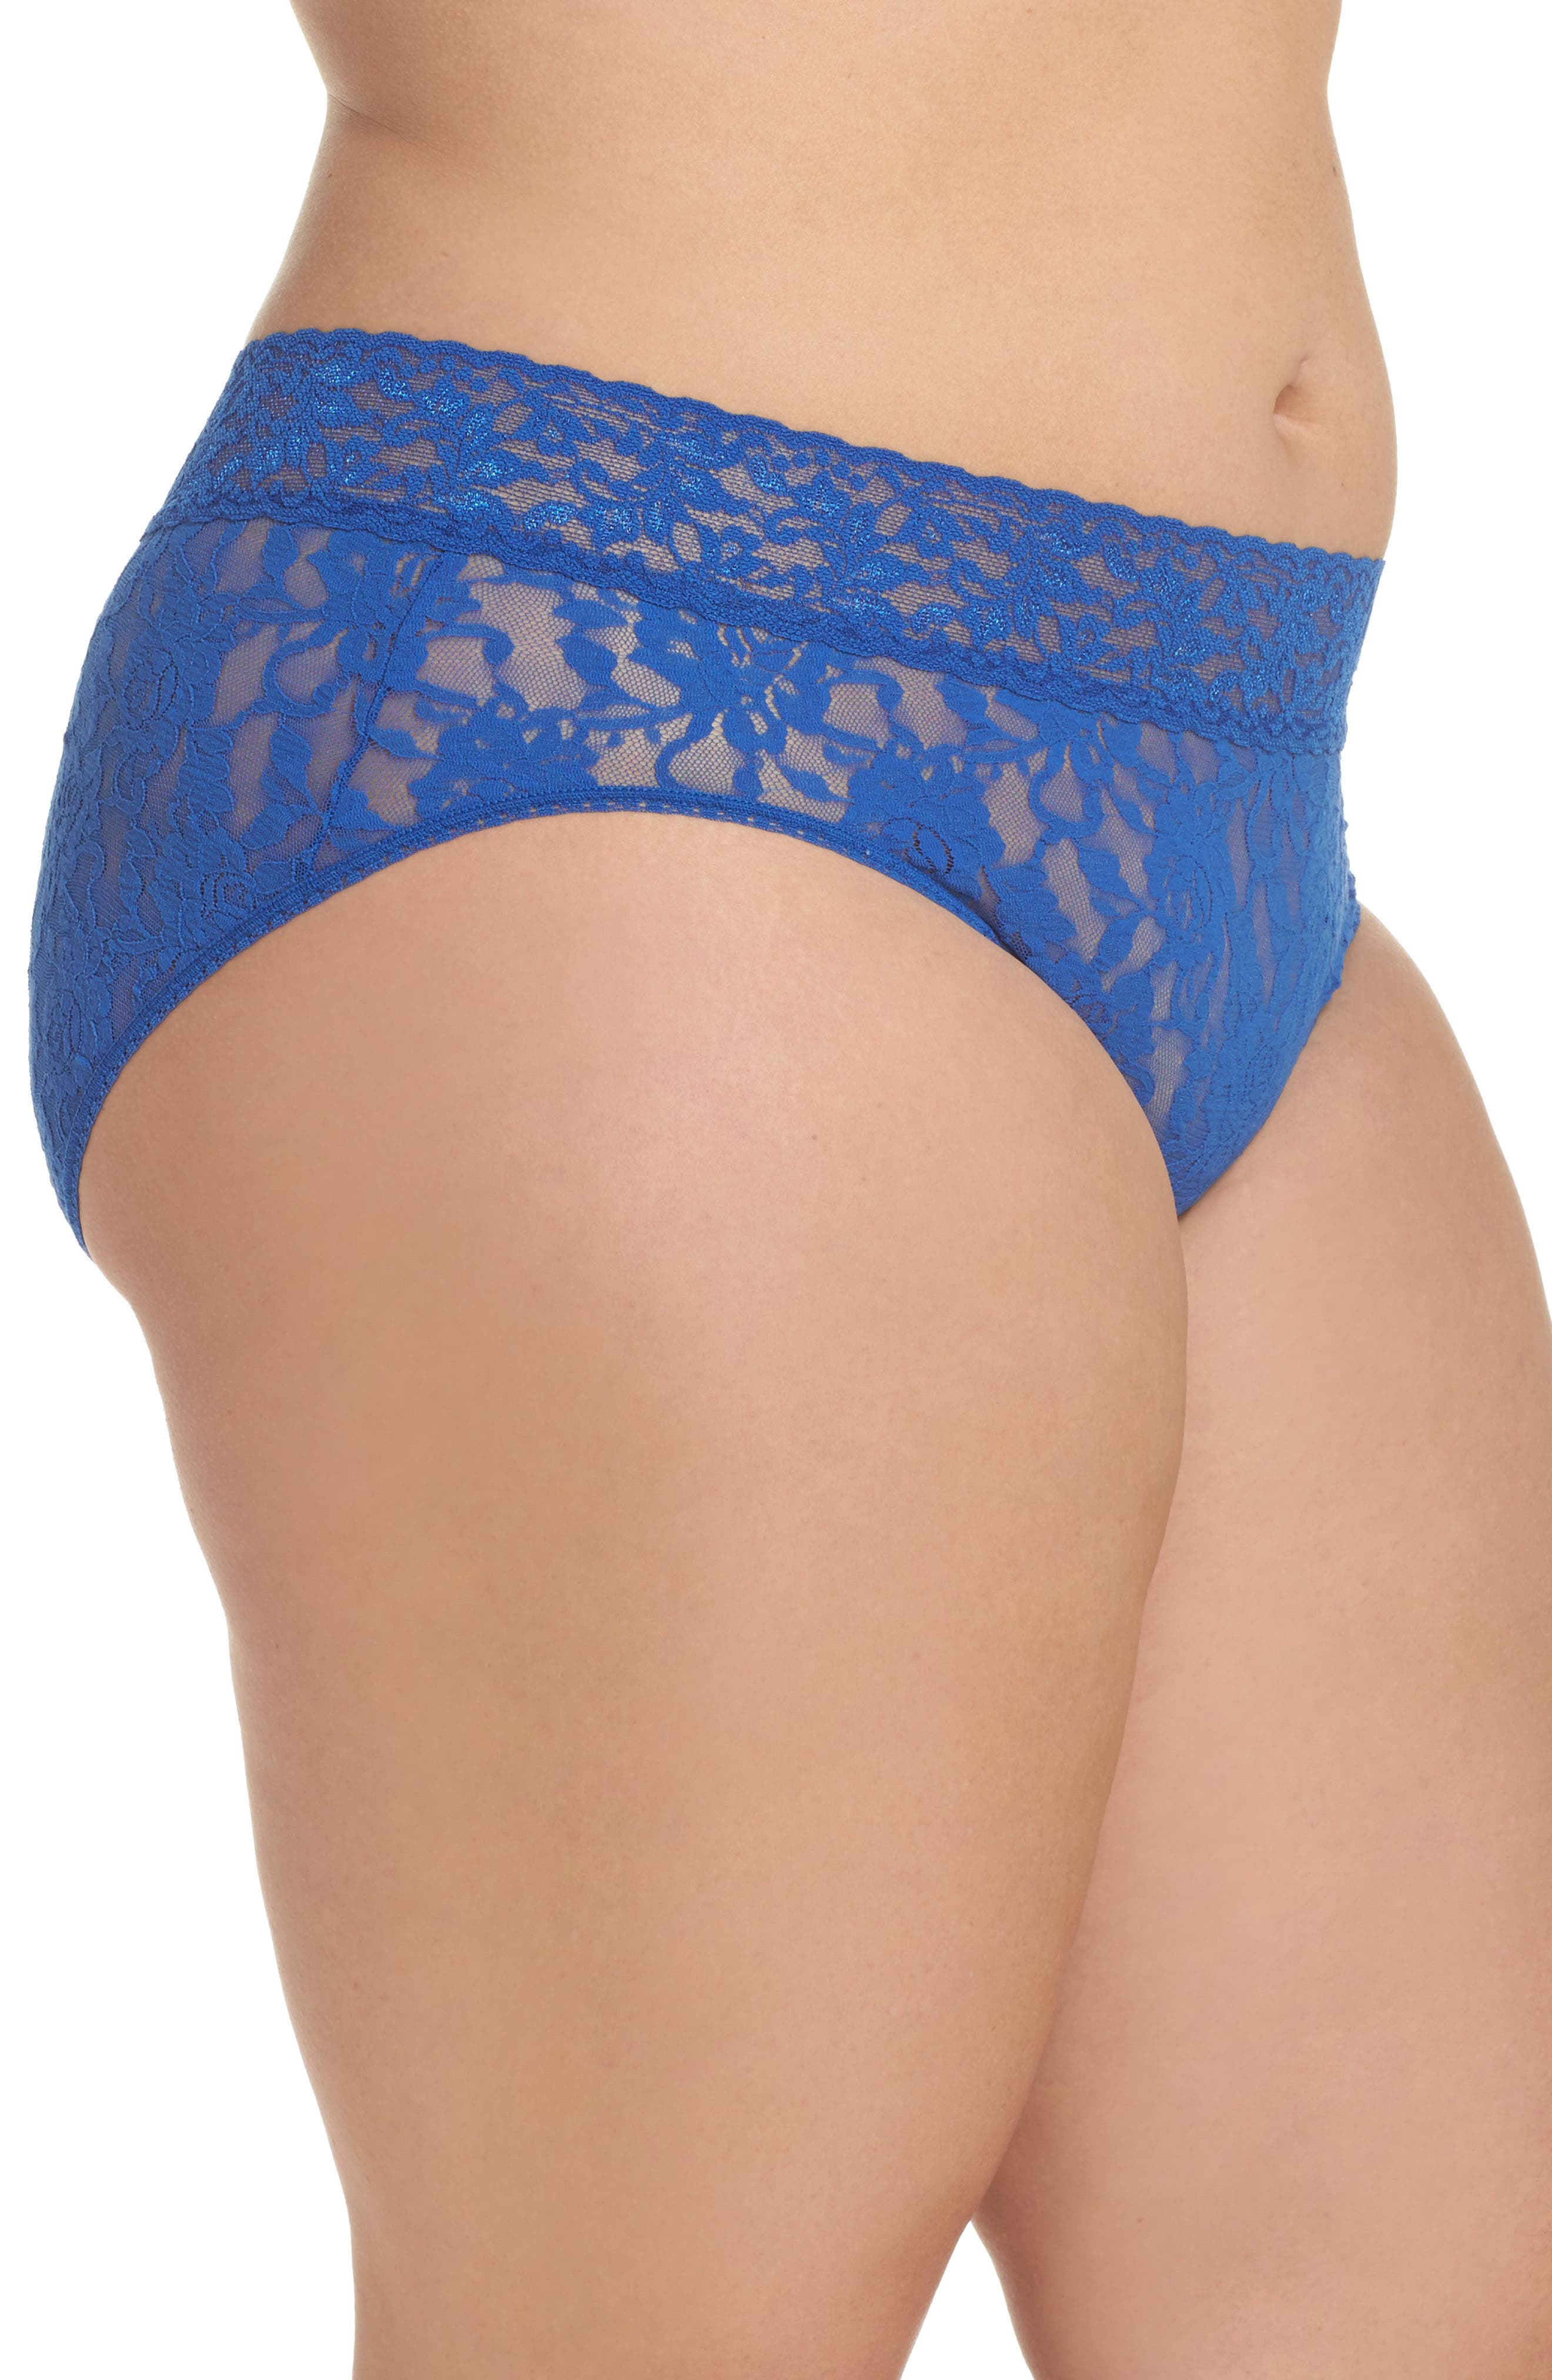 French Briefs,                             Alternate thumbnail 67, color,